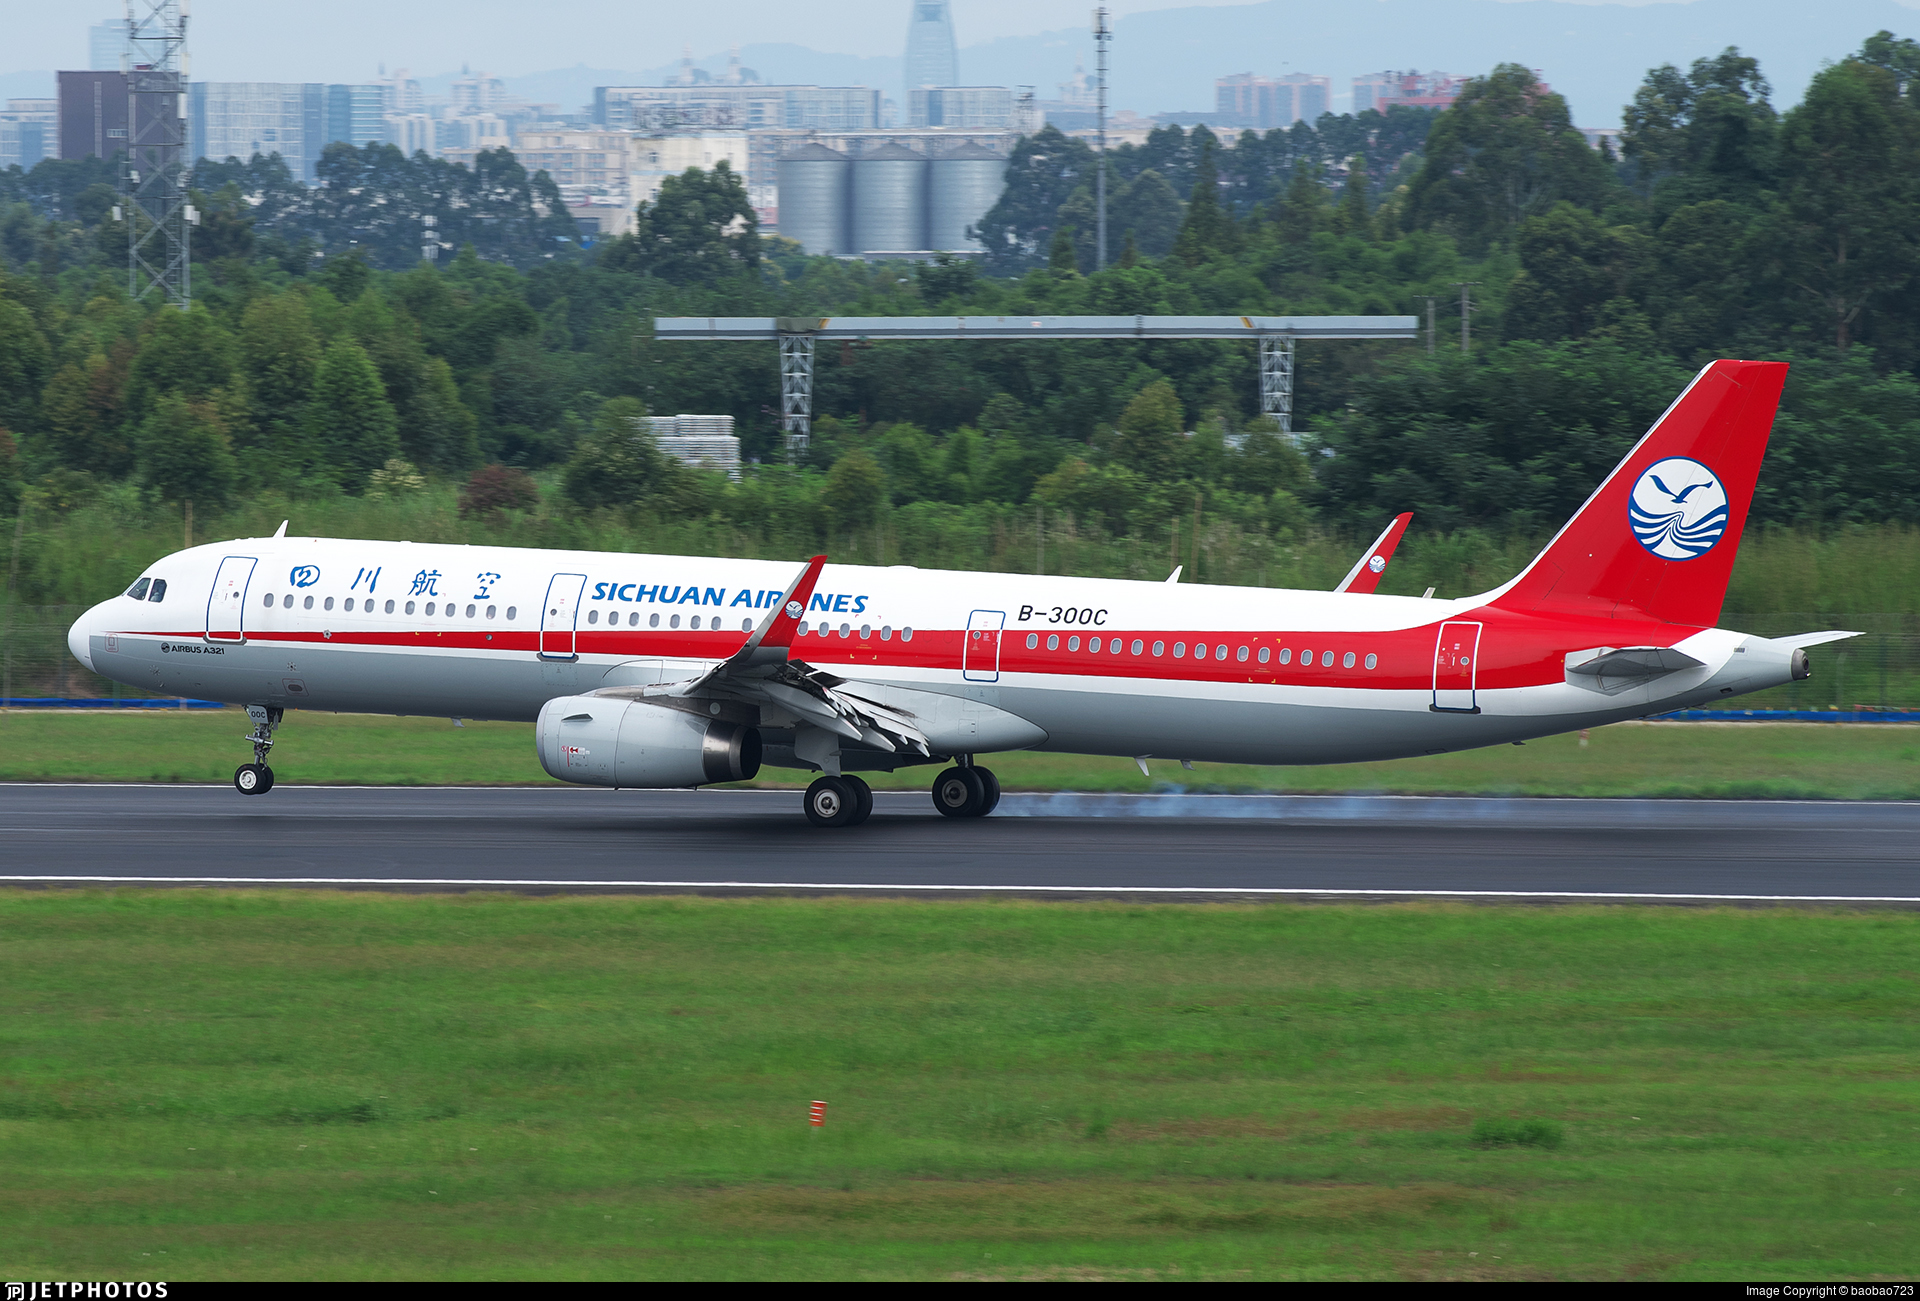 B-300C - Airbus A321-231 - Sichuan Airlines